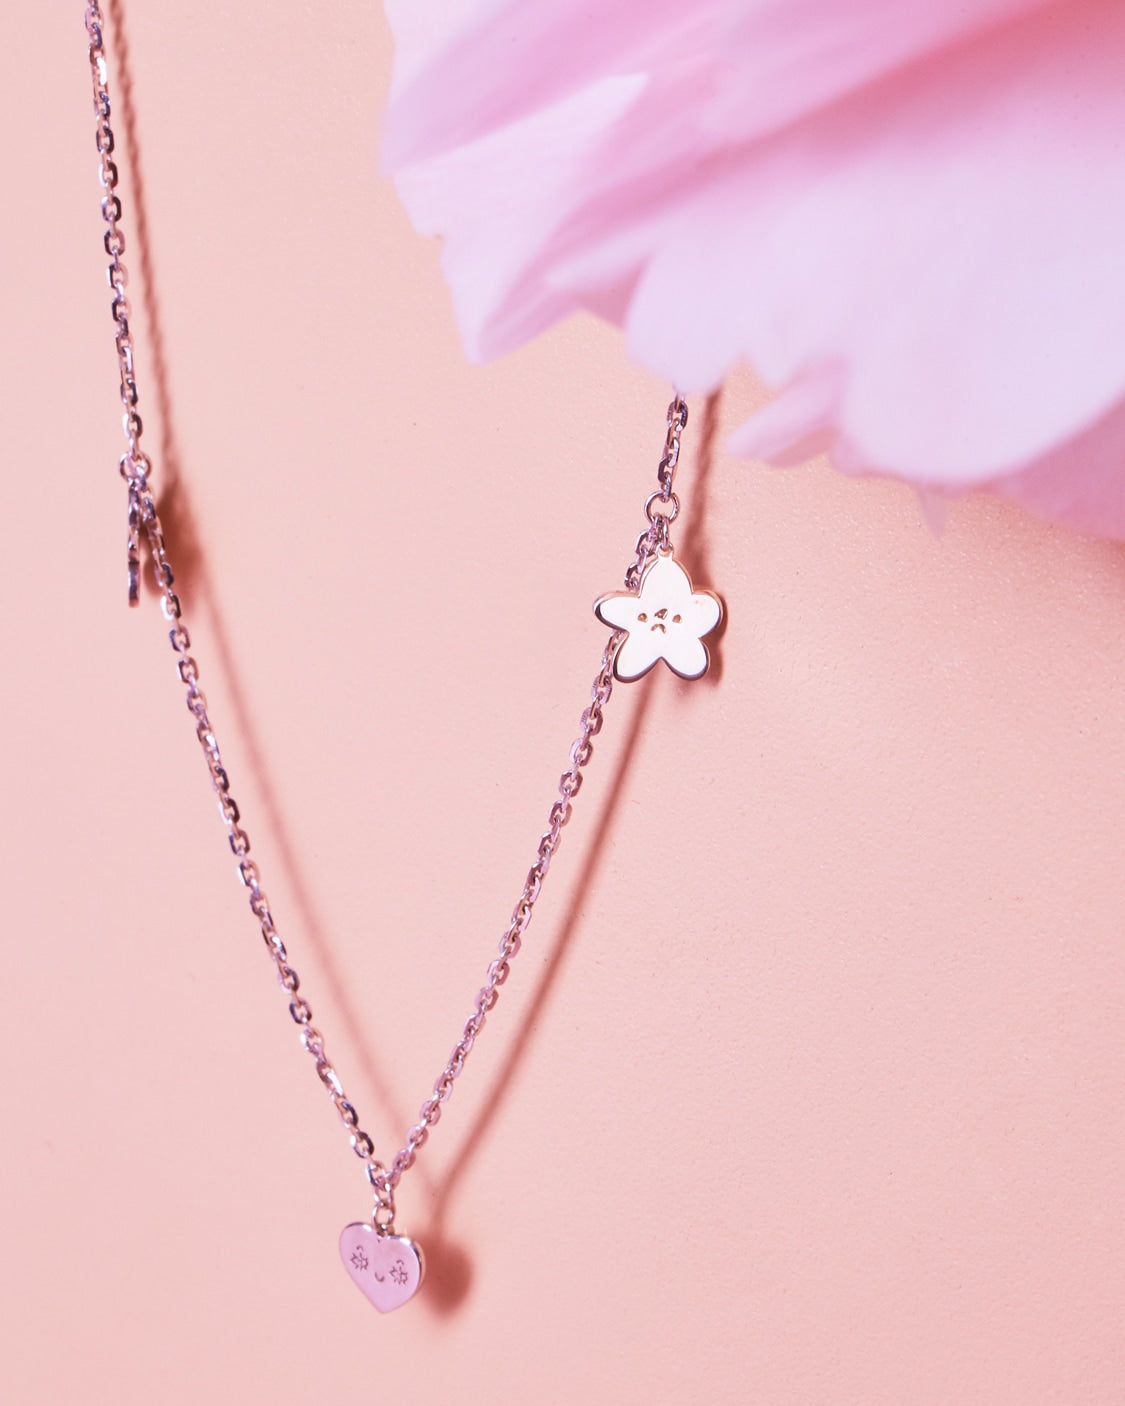 LOVES ME NOT NECKLACE 9kt gold